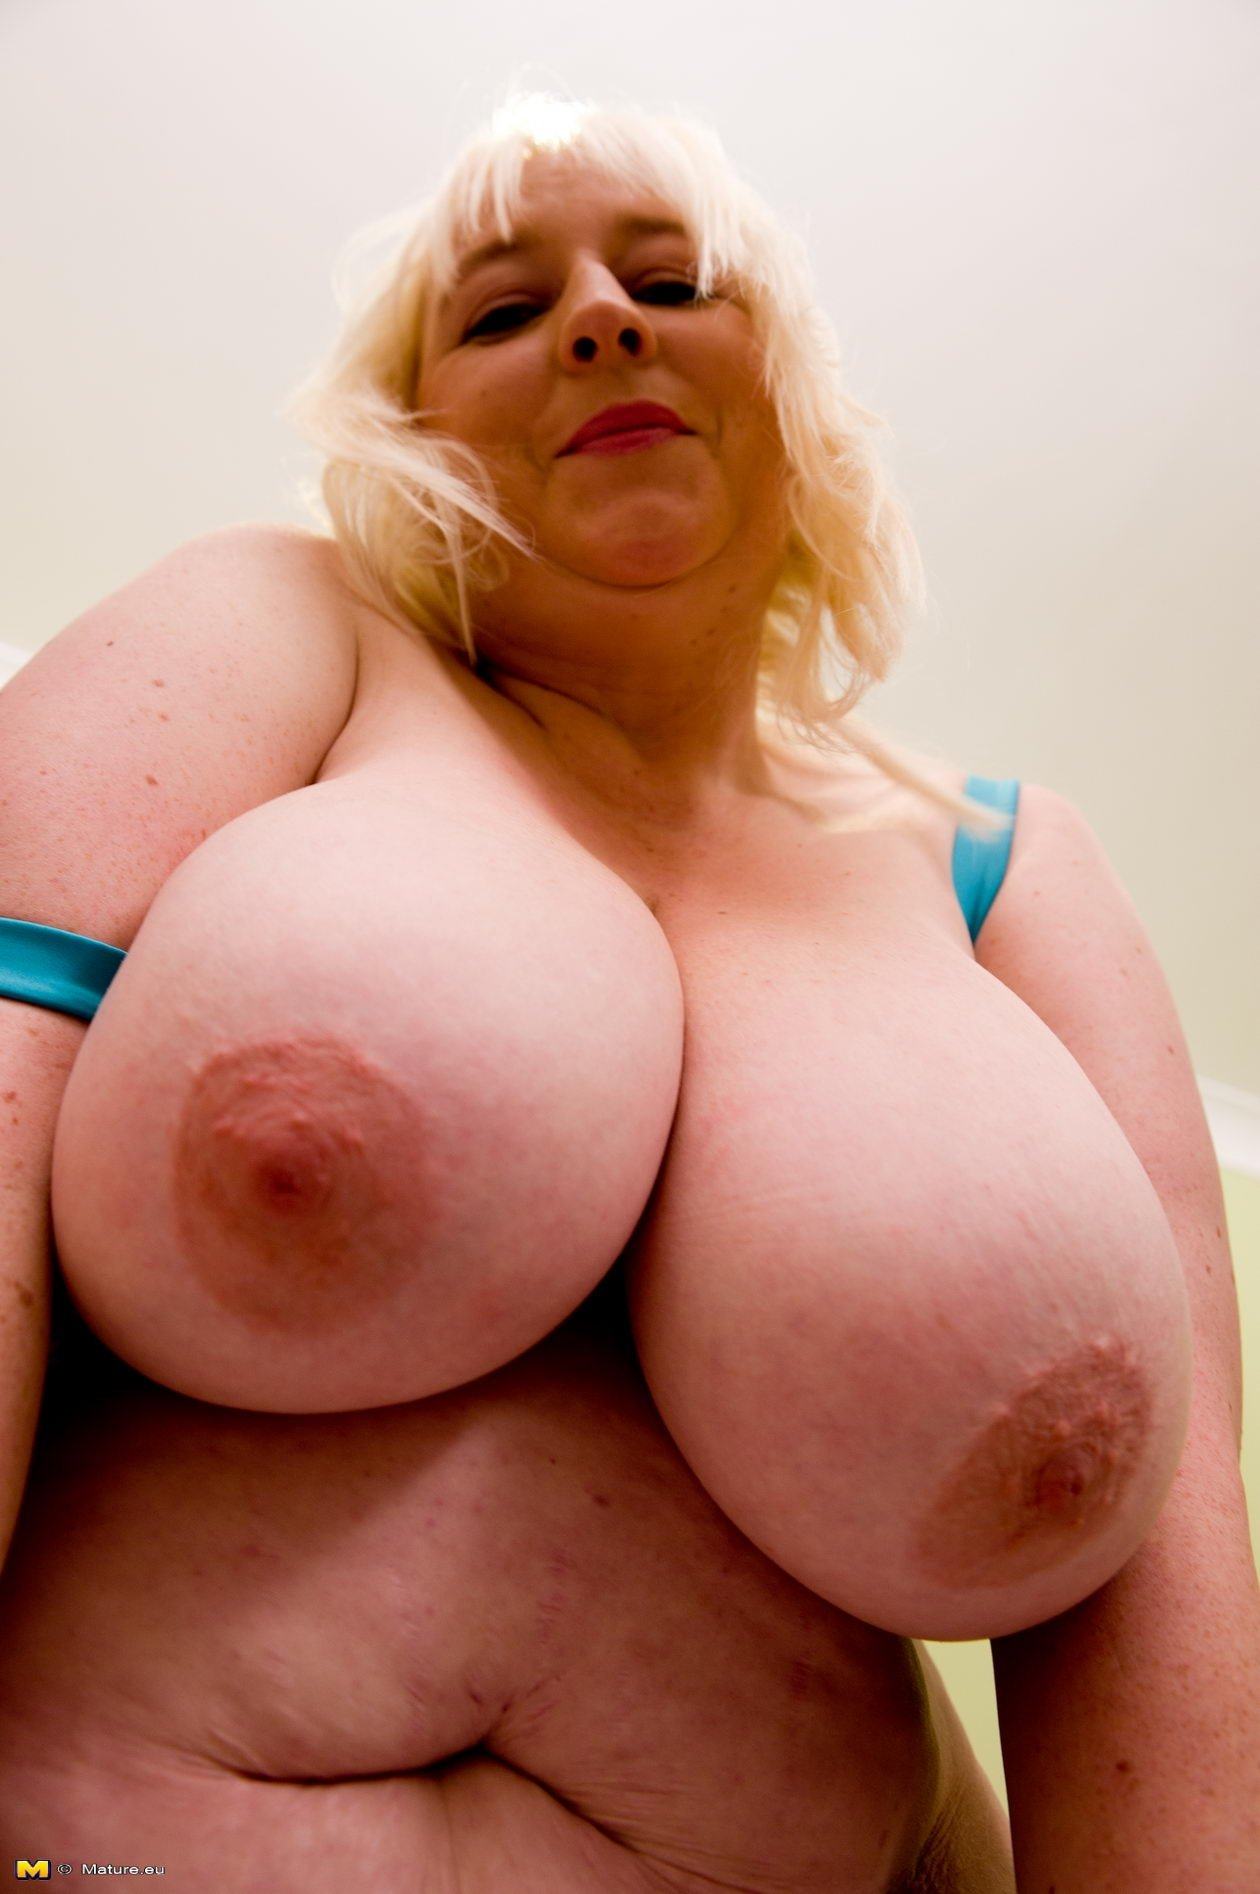 nurse and doctor video sex beauty girls nude pics